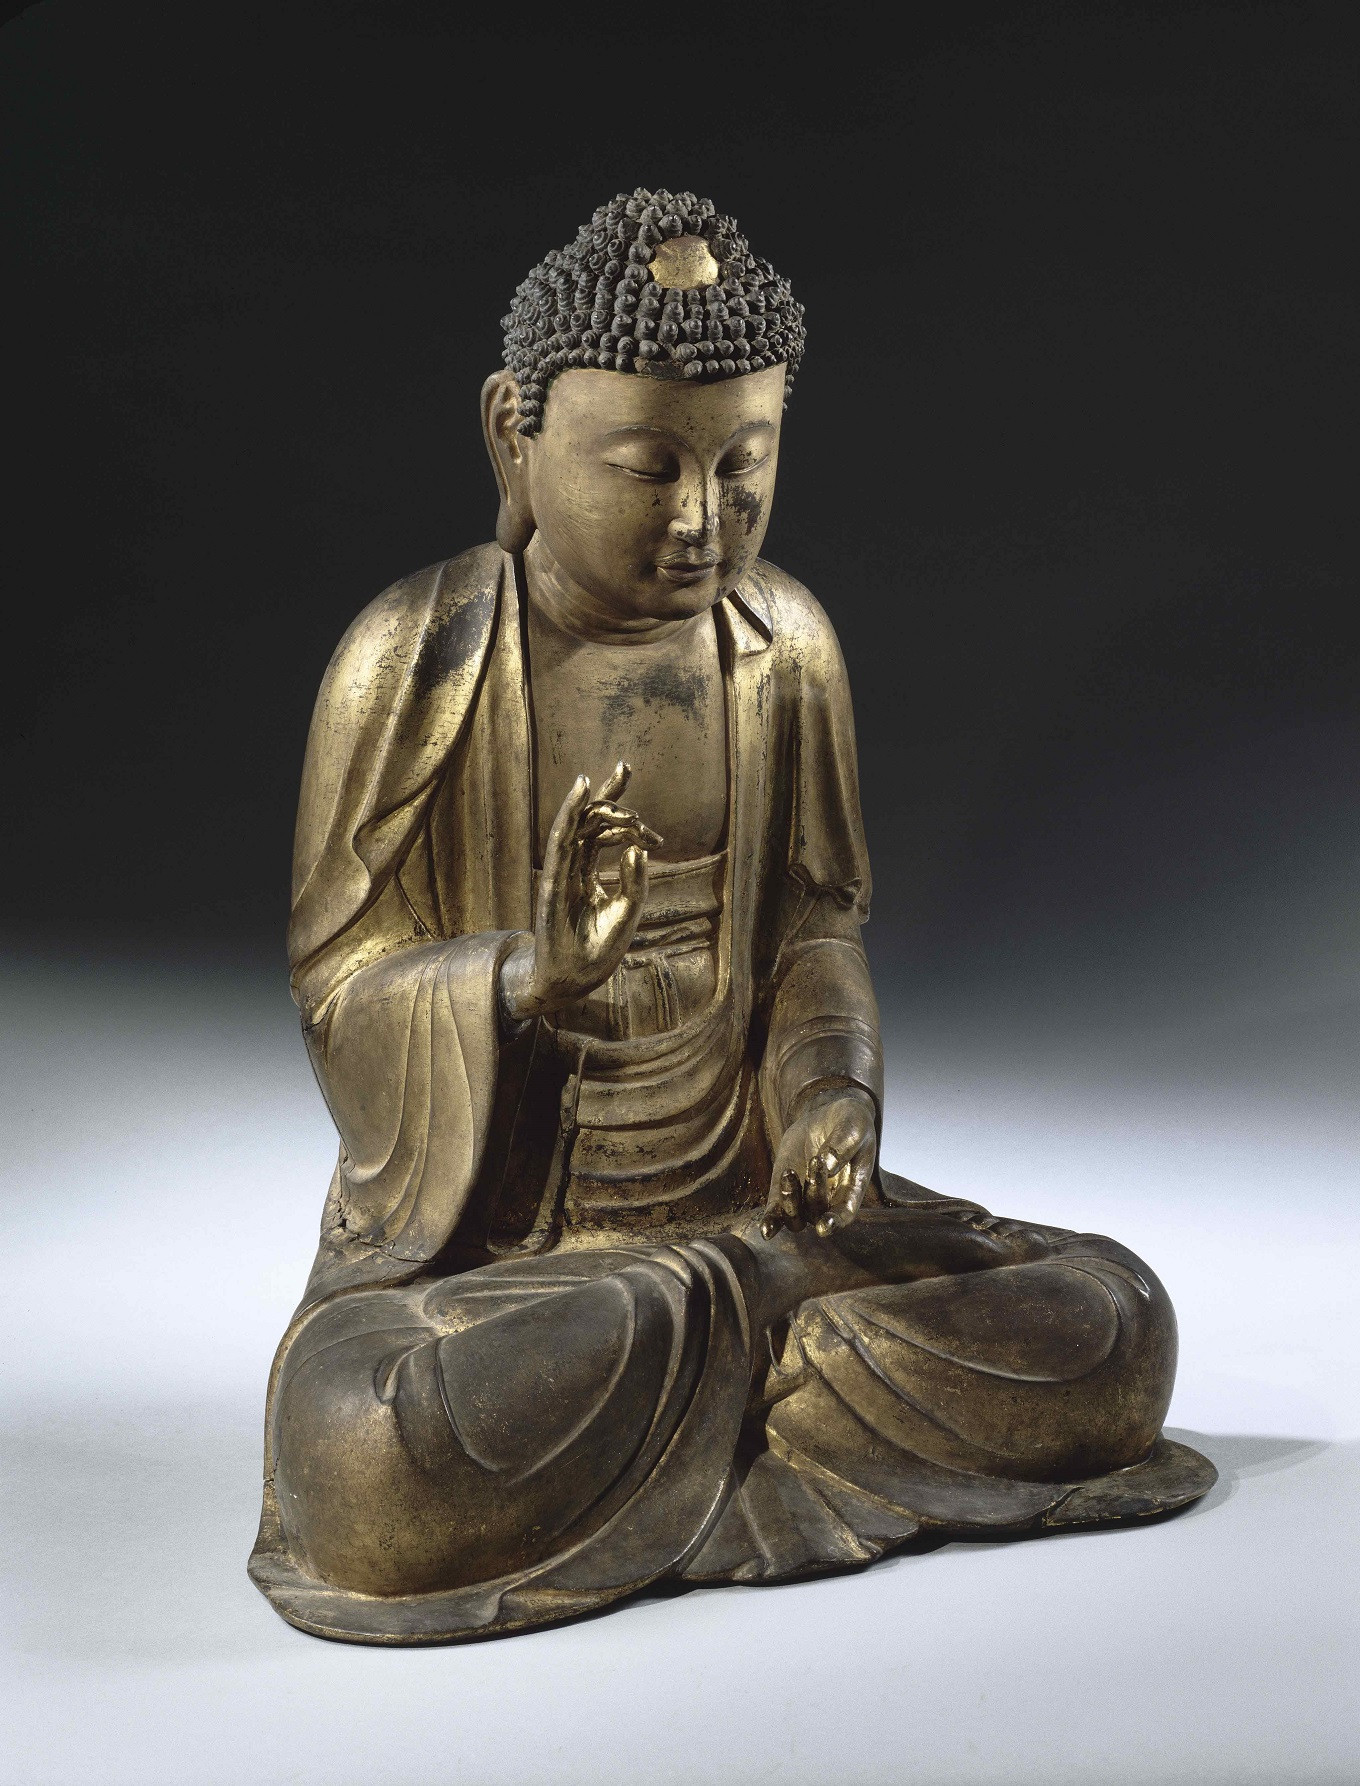 The seated Korean Buddha making a gesture of prediction dates from the Koryo period (11th-12th century). The gilded wooden statue is 62 centimeters high, 48 cm wide and 33 cm thick and was collected by the Charles Varat Mission in 1888.